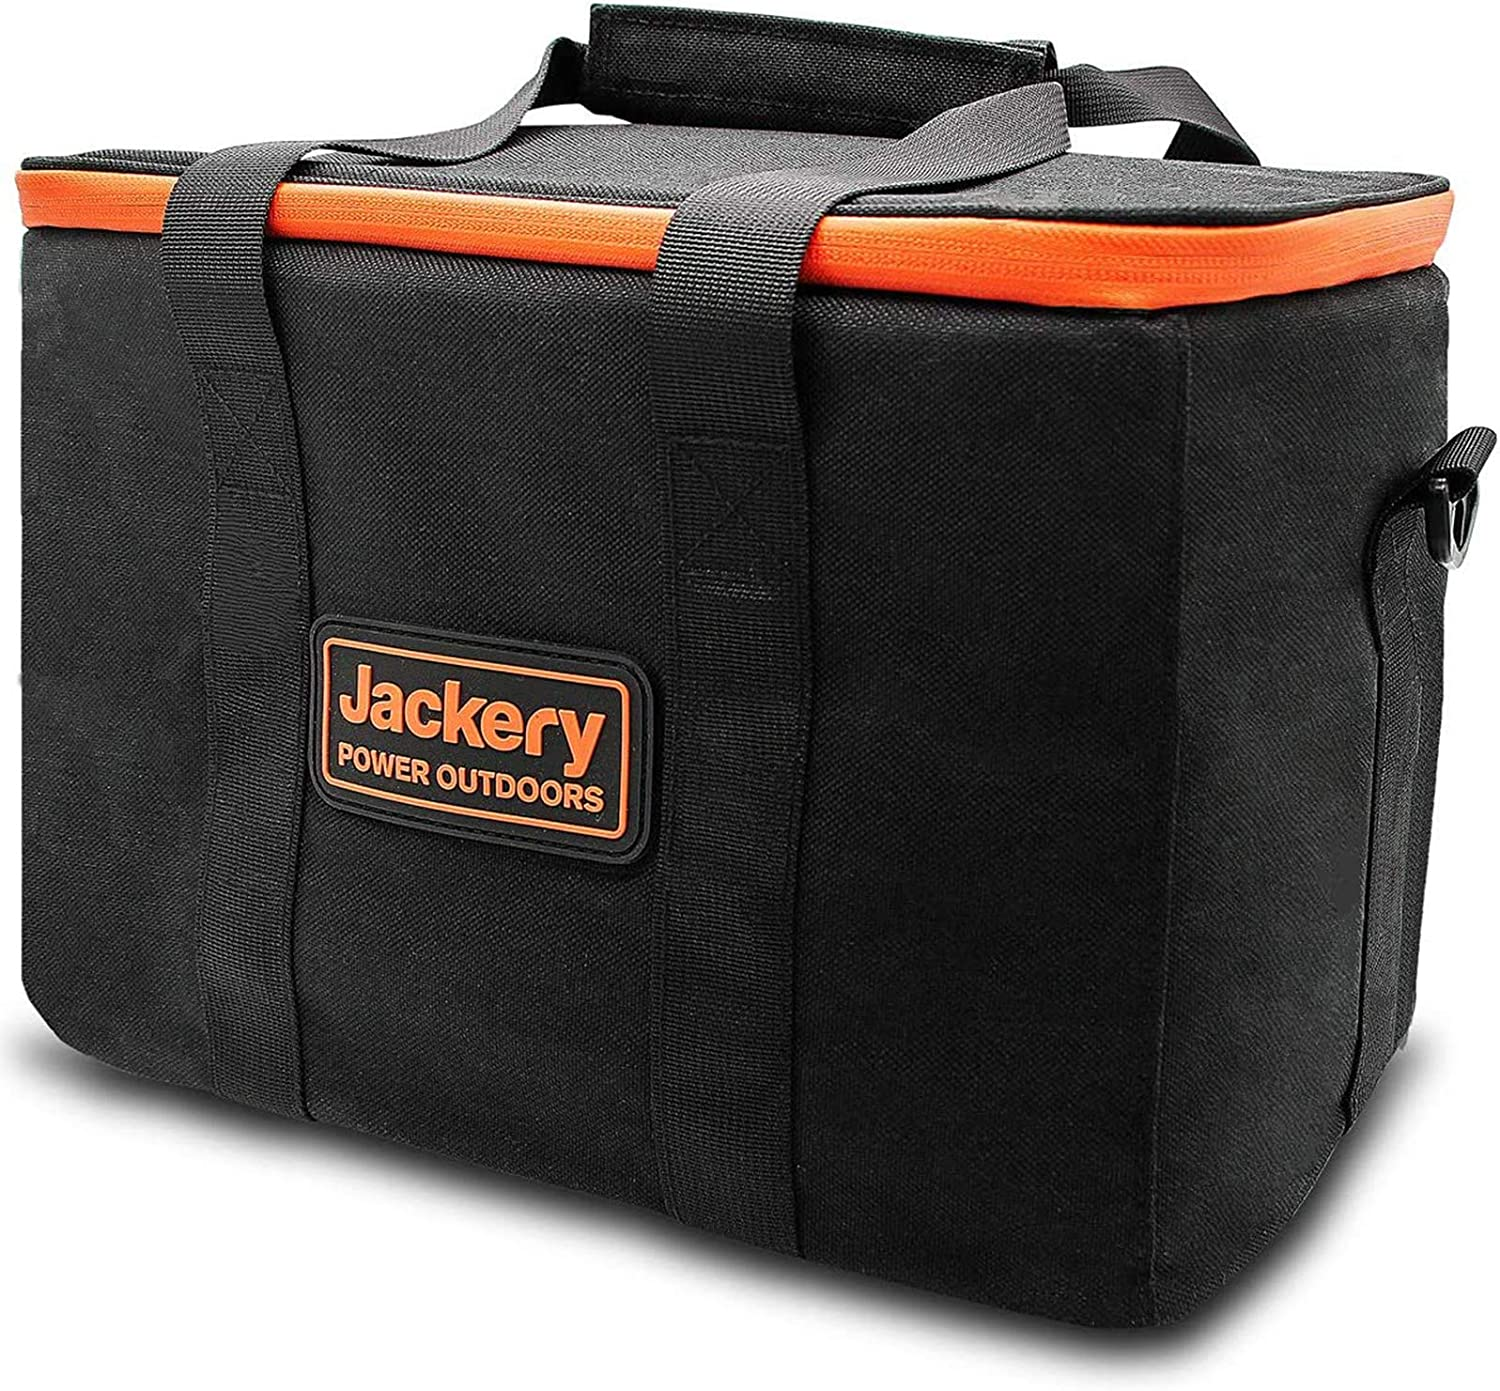 Jackery Carrying Case Bag for Explorer 500 Portable Power Station - Black (E500Not Included)